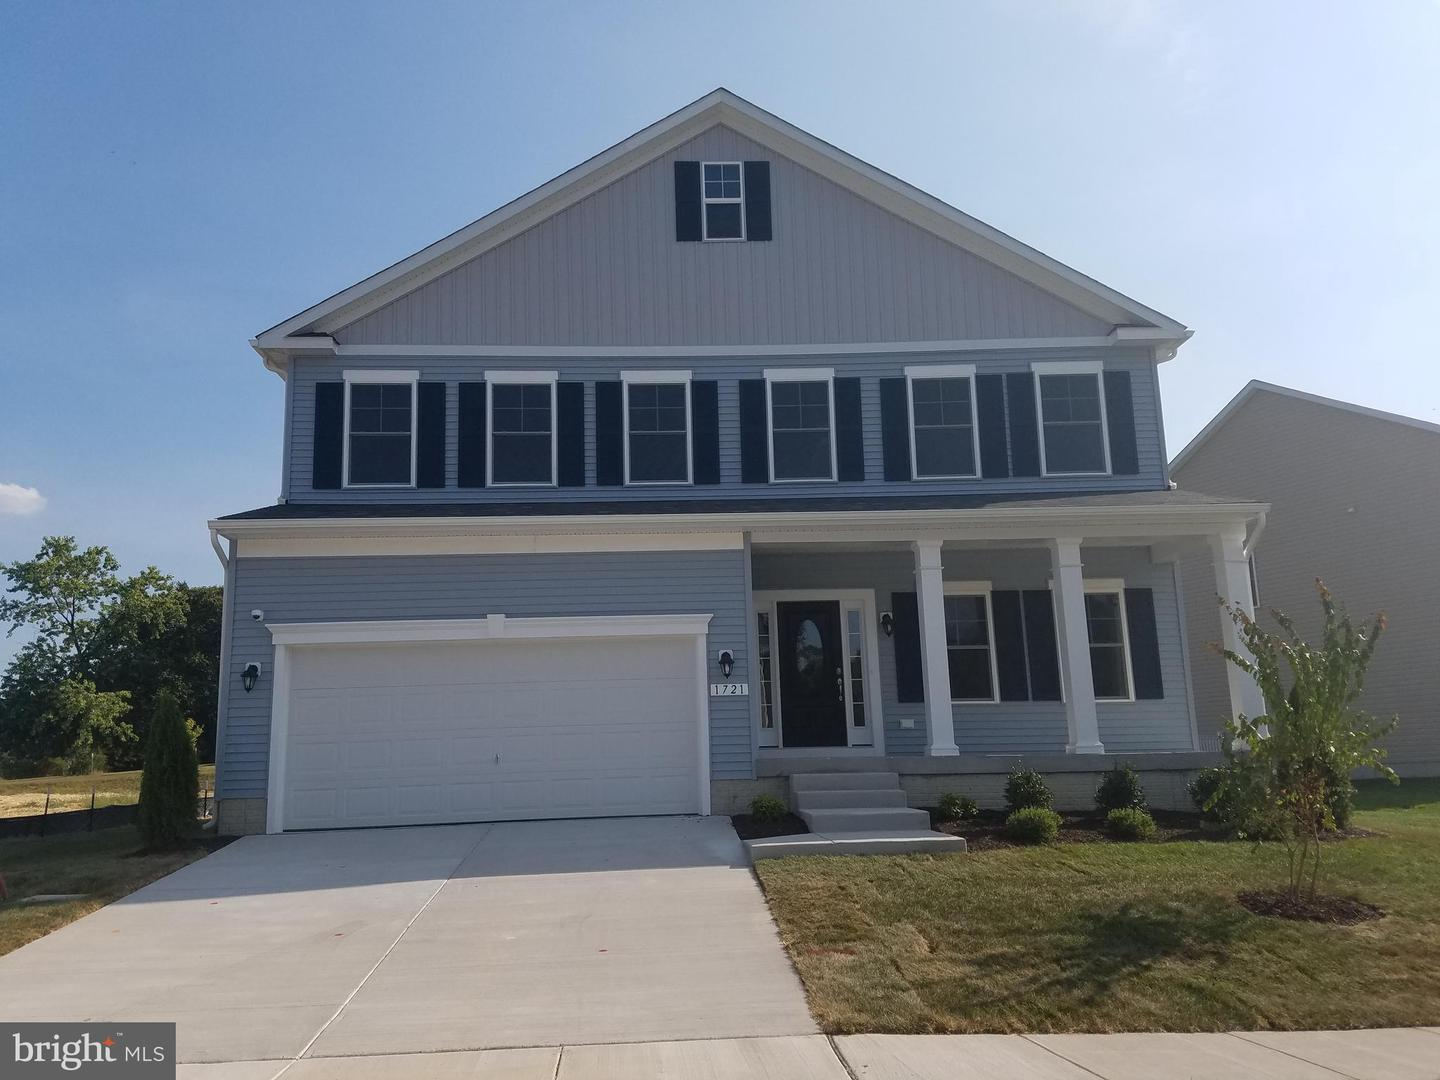 1428 CANOPY LN, ODENTON, Maryland 21113, 6 Bedrooms Bedrooms, ,5 BathroomsBathrooms,Single Family,For Sale,1428 CANOPY LN,MDAA417358